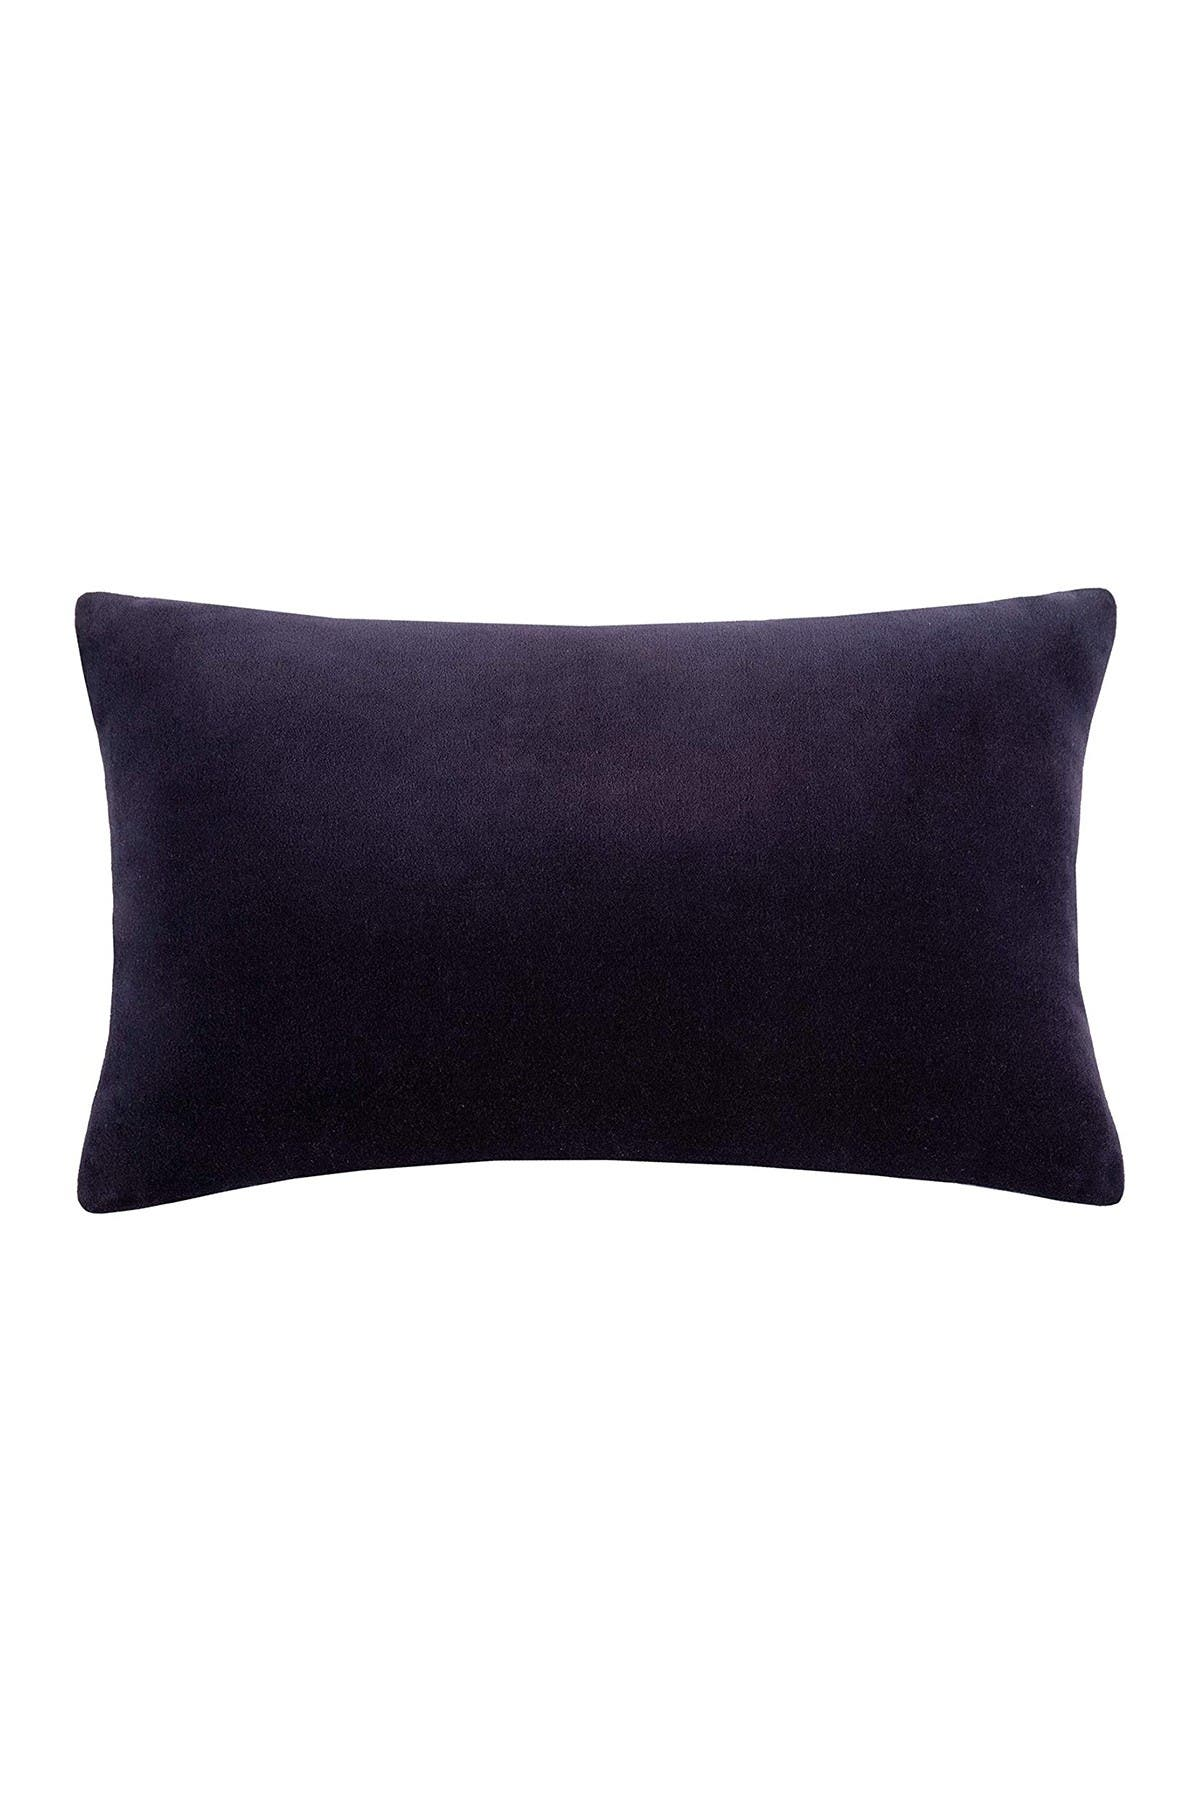 "Image of kate spade new york navy reversible velvet & linen pillow - 12"" x 20"""